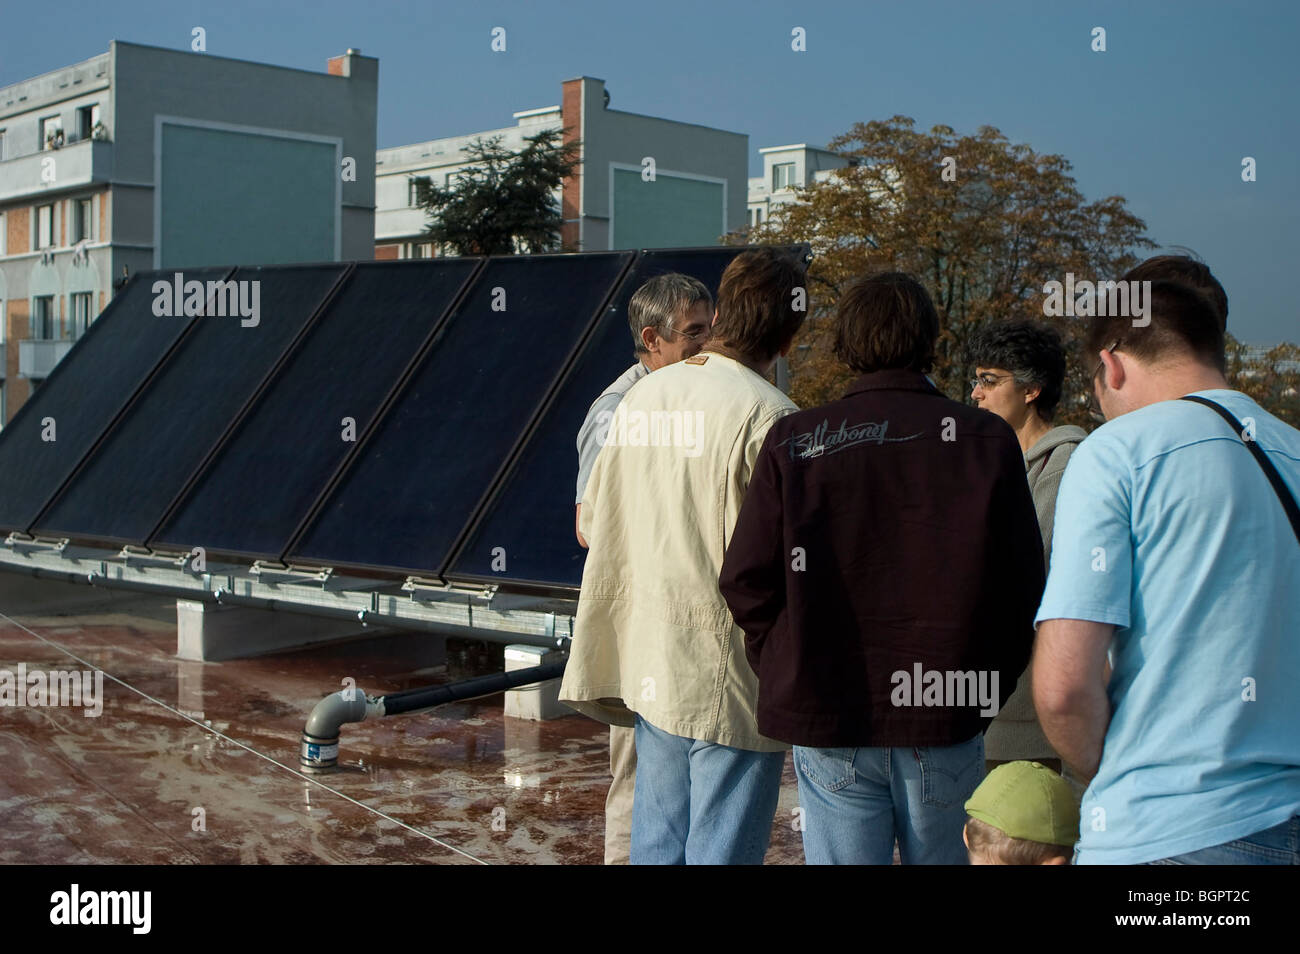 Montreuil, France, Open House Solar House in Paris Suburbs, People Visiting Roof of Building with Solar Panels - Stock Image